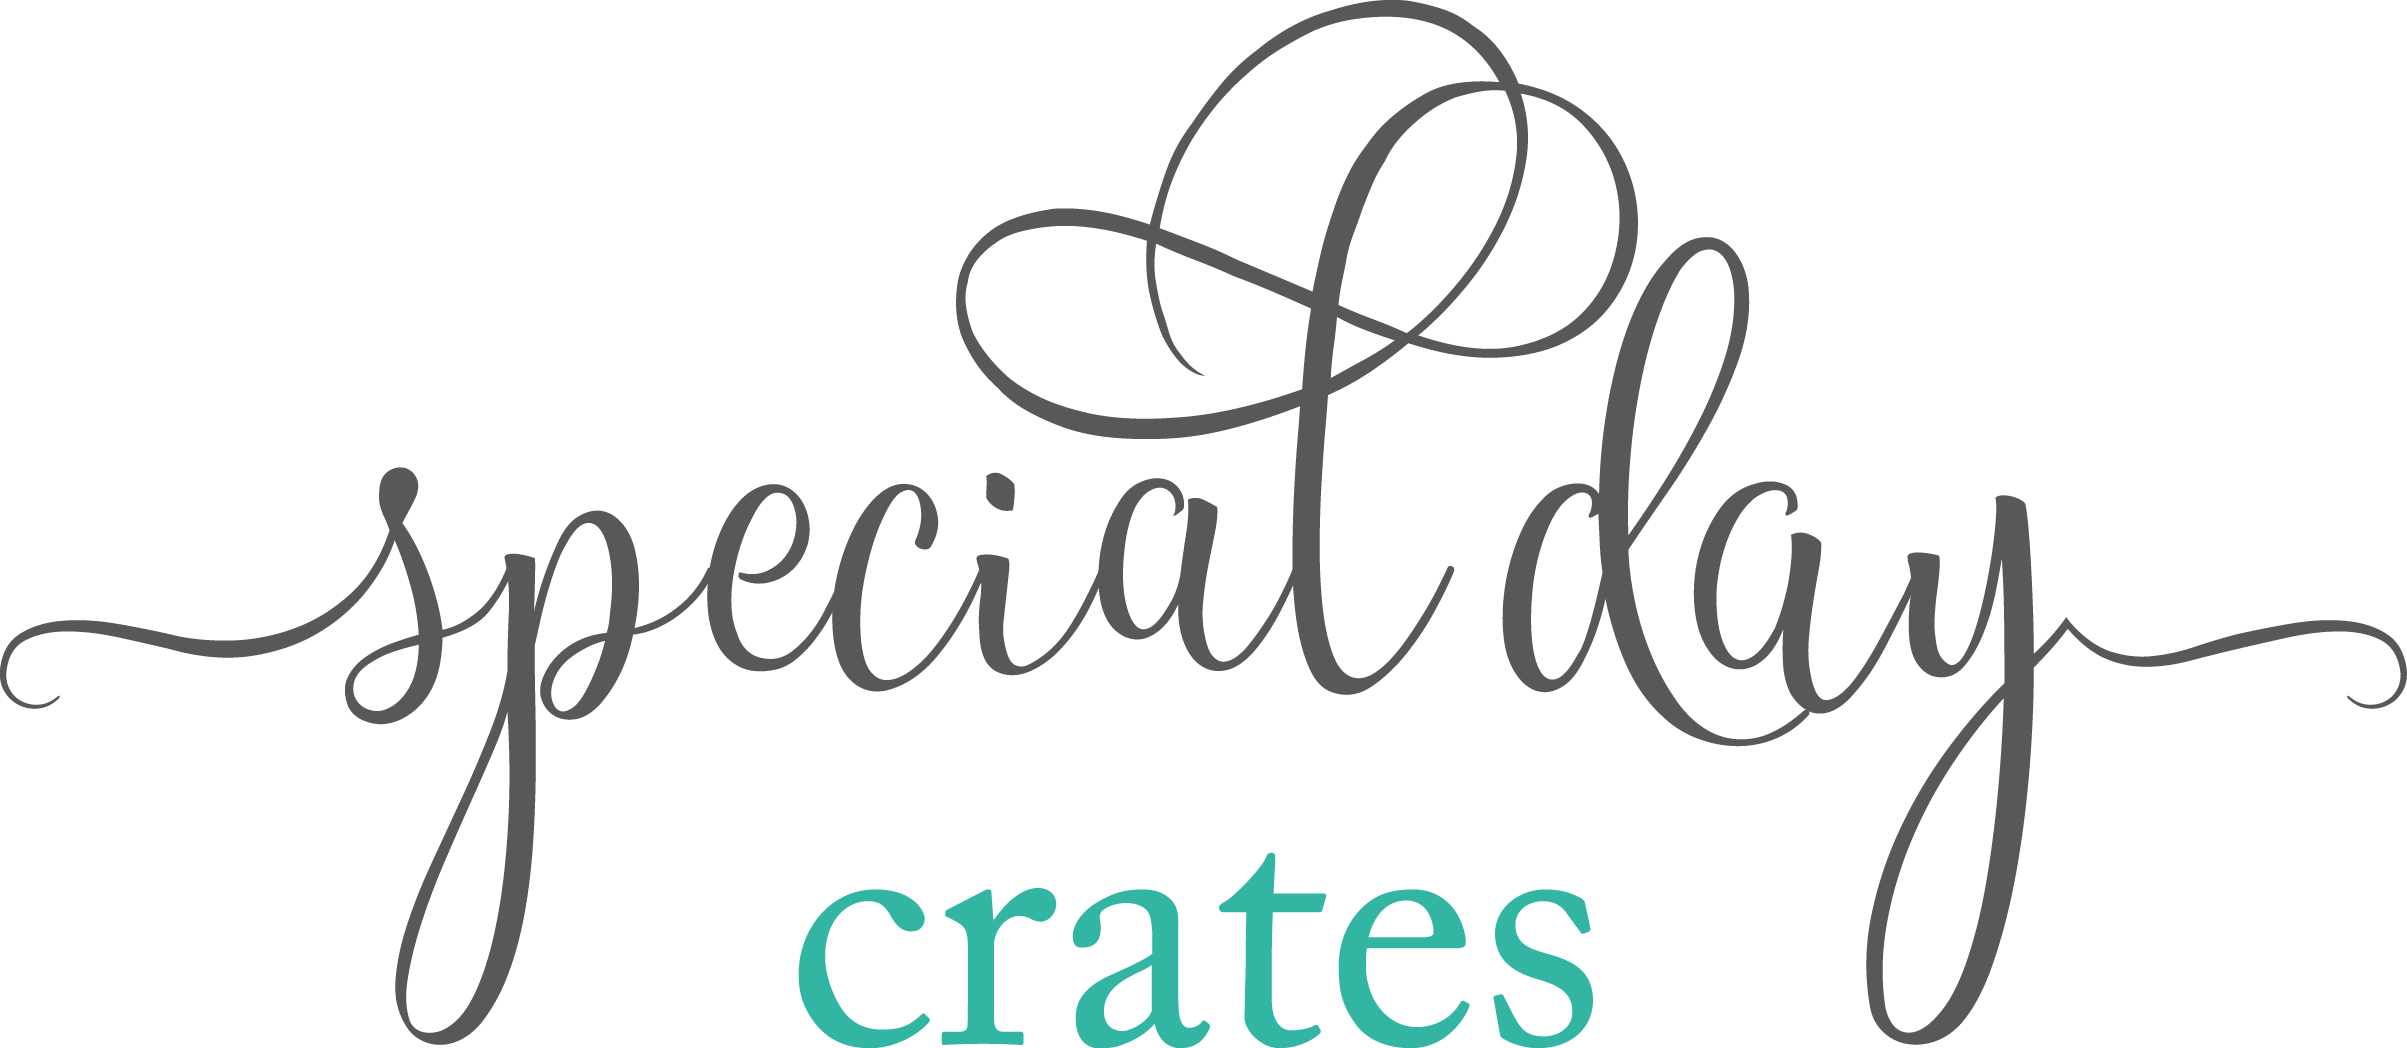 Special Day Crates